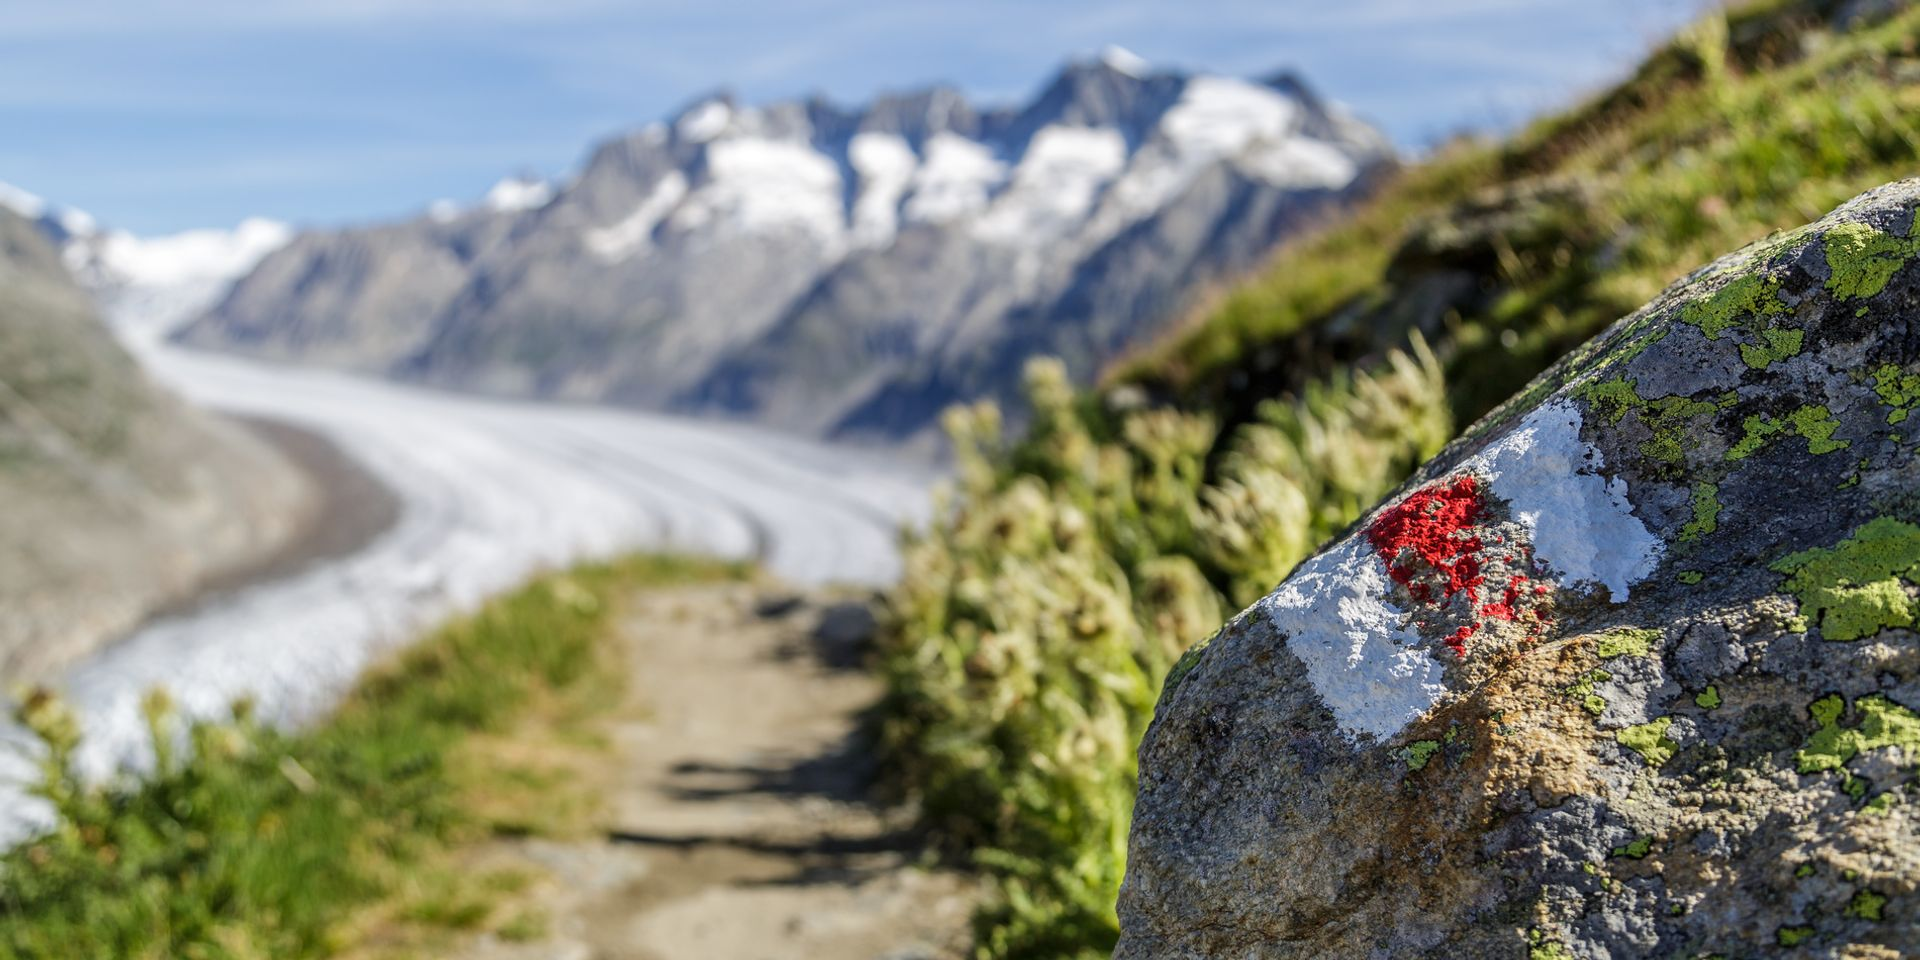 The photo shows a hiking trail in the canton of Valais, with the Aletsch Glacier in the background.